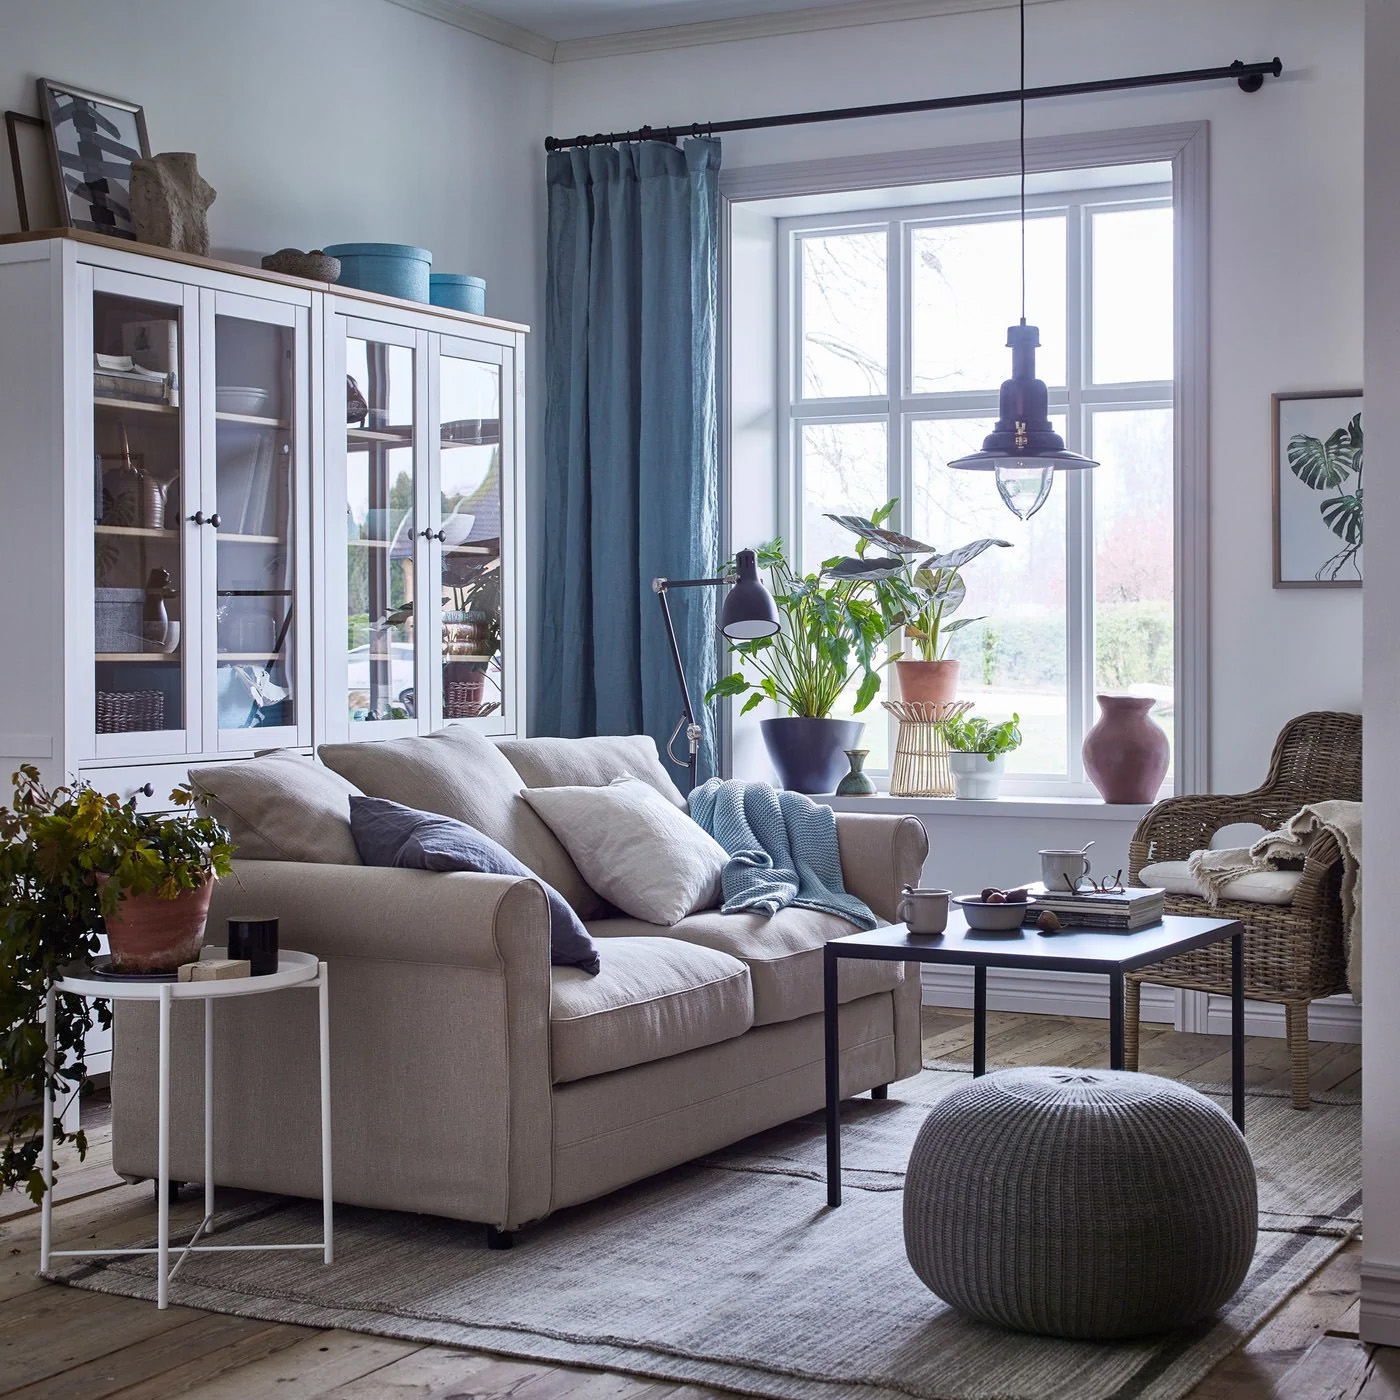 A cosy beige and white living room with blue curtains and a GRÖNLID 2 seat sofa in sporda natural beside a rattan chair and glass door cabinet.